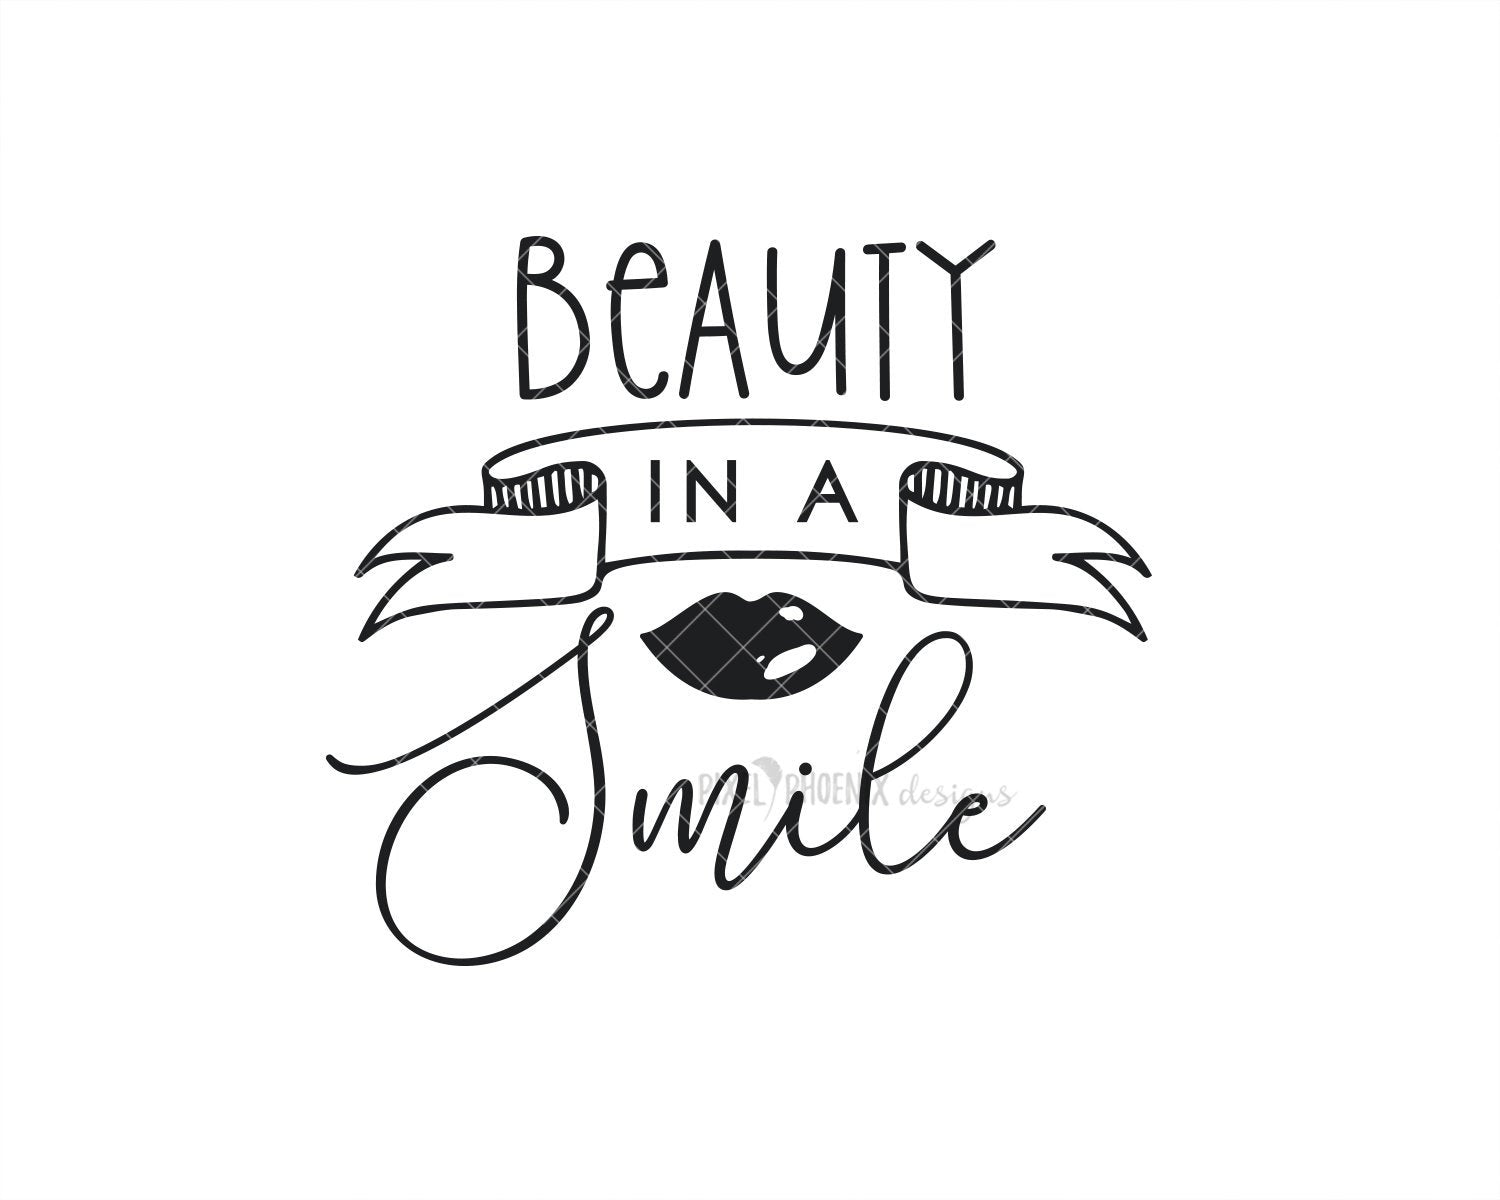 Beauty in a Smile SVG, Beauty SVG, Cut file for makeup artists, salon owners, stylists, or anyone in the fashion industry.